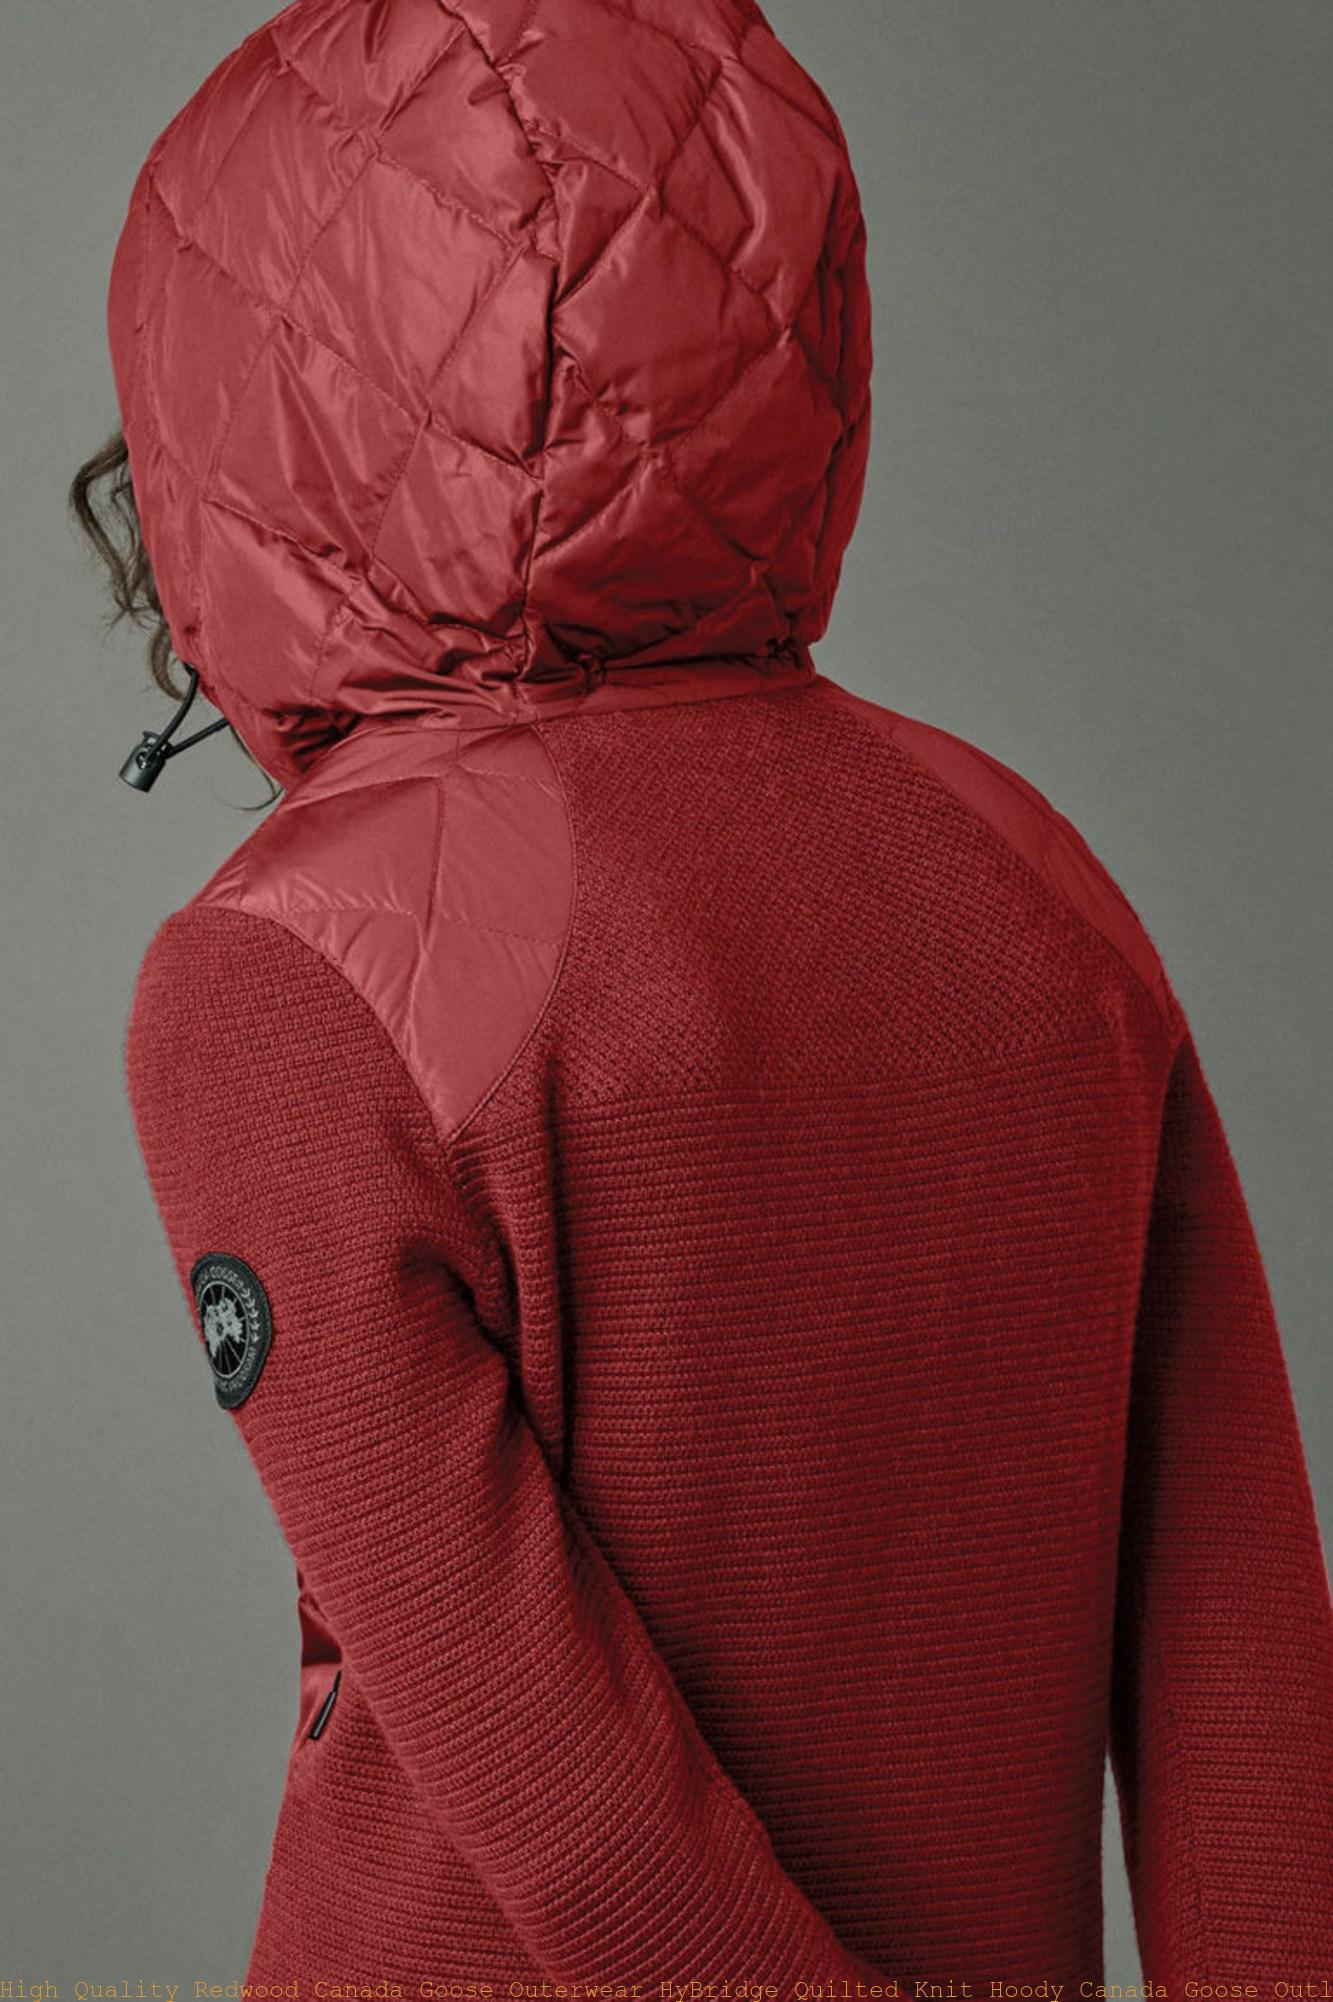 High Quality Redwood Canada Goose Outerwear HyBridge Quilted Knit Hoody Canada  Goose Outlet New York City 6900L – Canada Goose Outlet Sale: Best Cheap Canada  Goose Jackets